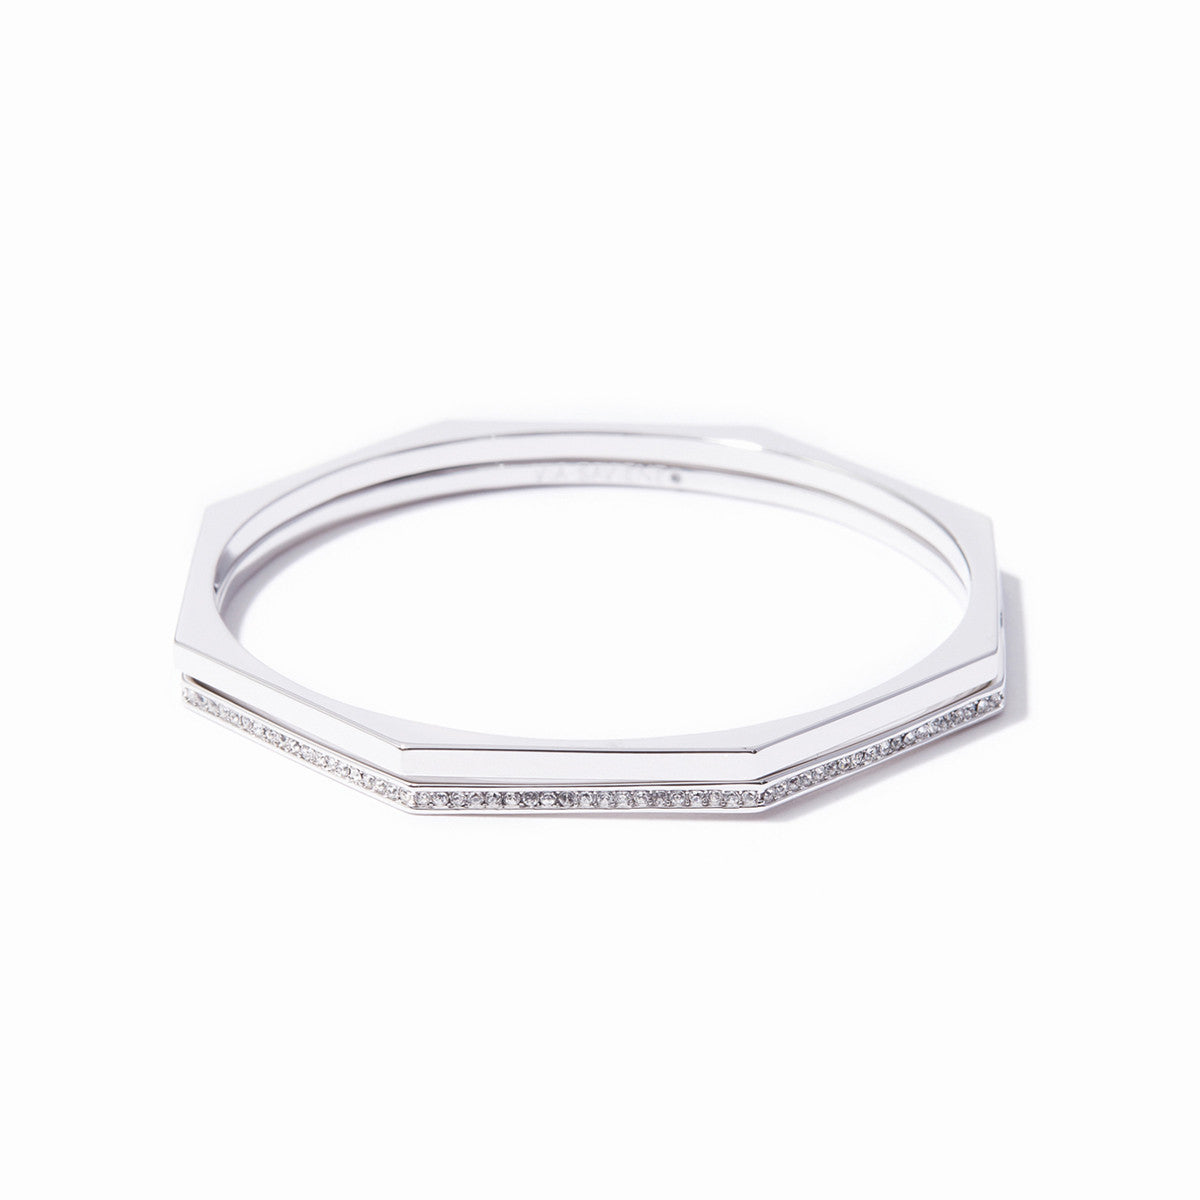 Aris Pave Bangle Set - Rhodium